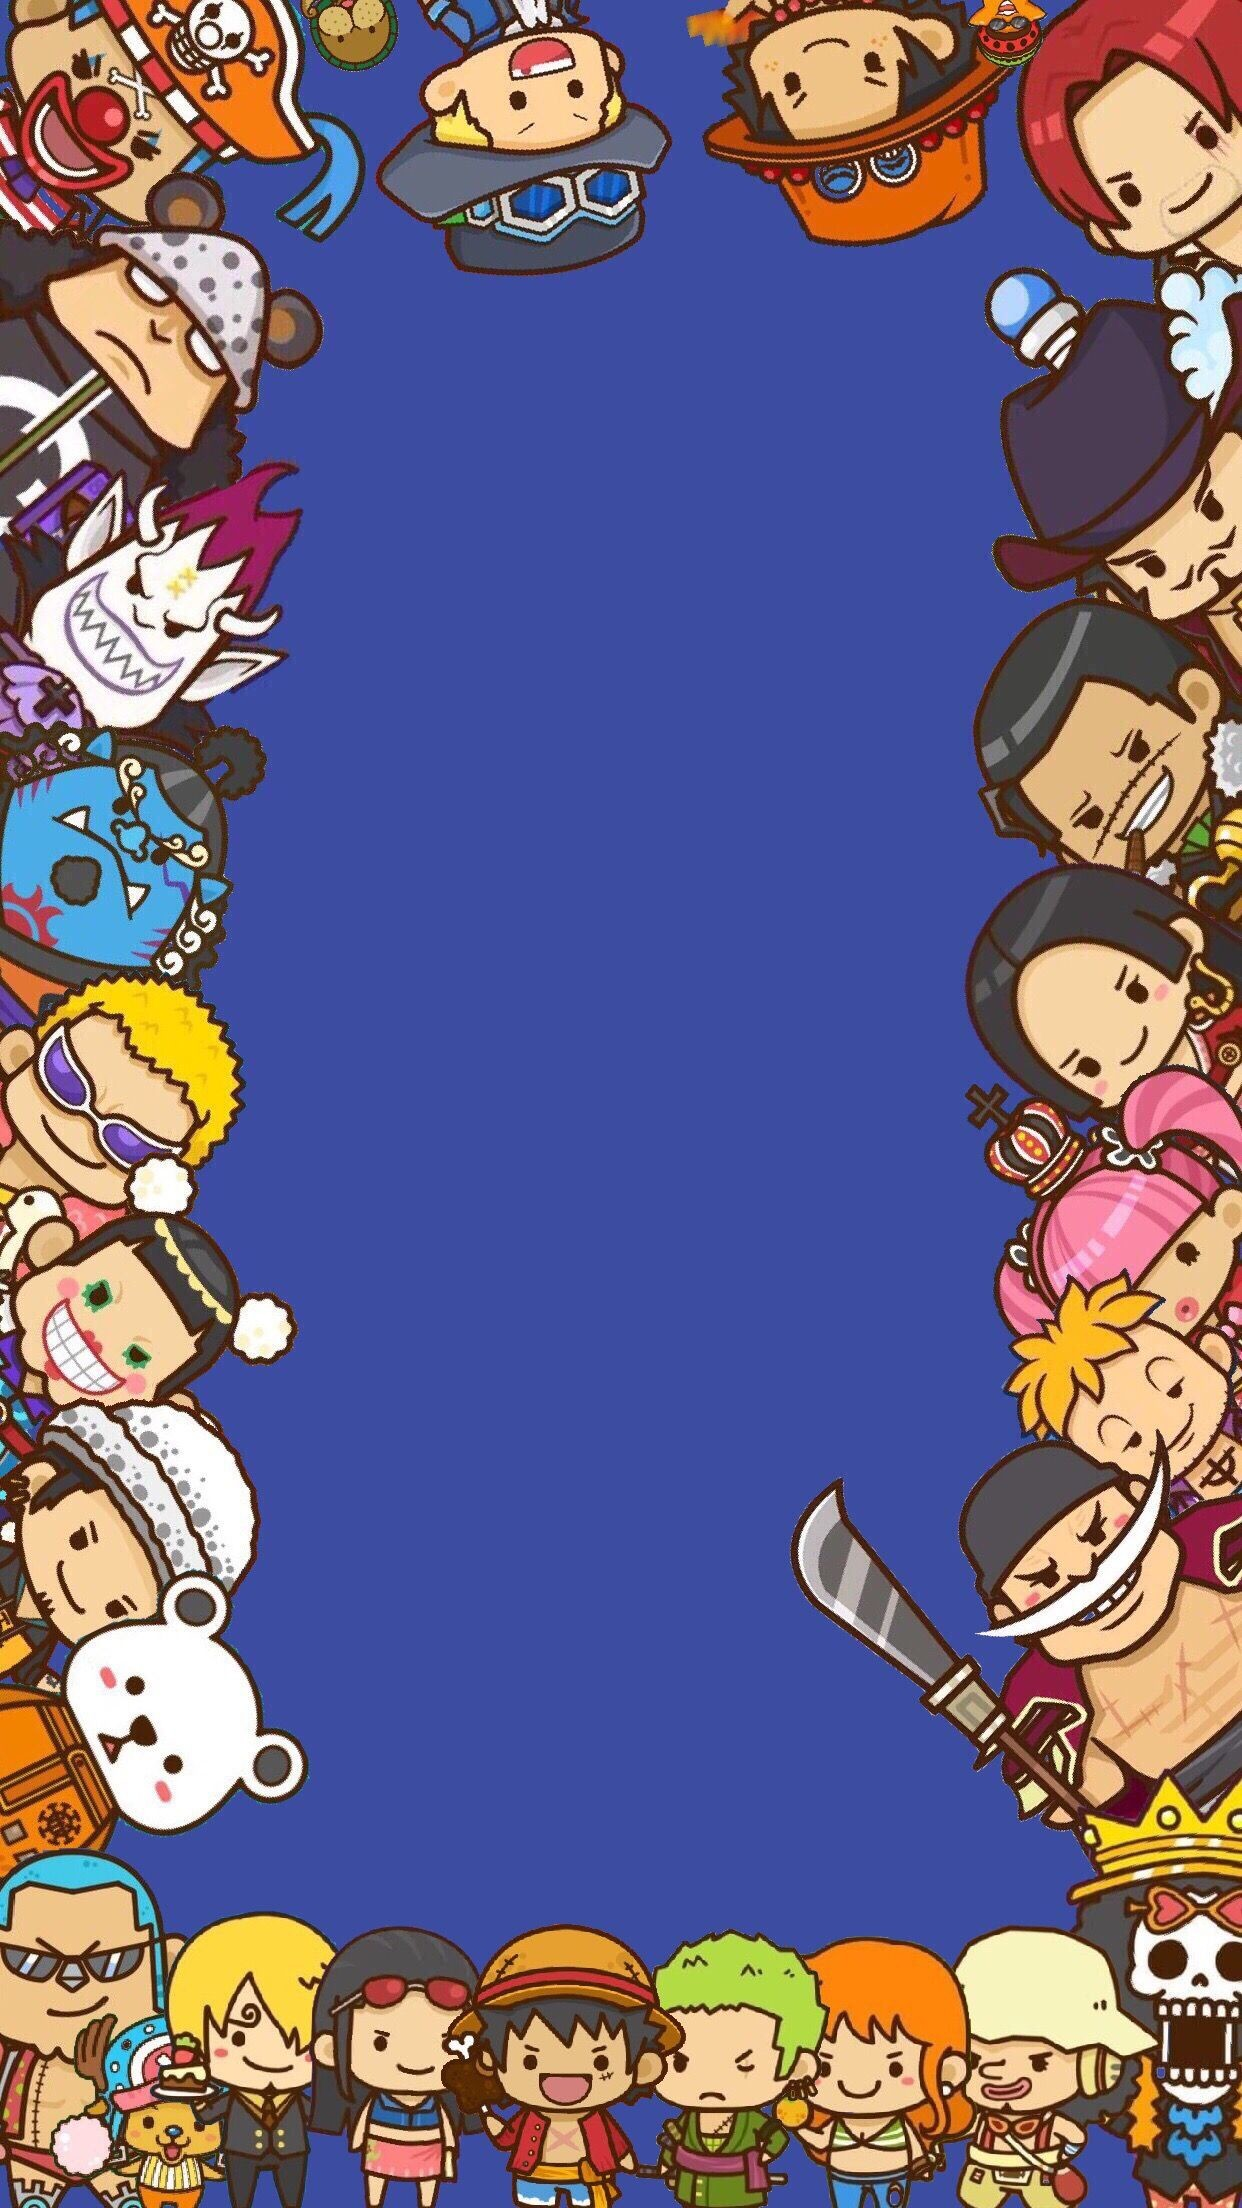 Res: 1242x2208, One piece wallpaper.. I edited it on photoshop but I couldn't find the  original artist to give credit for those awesome chibi drawings